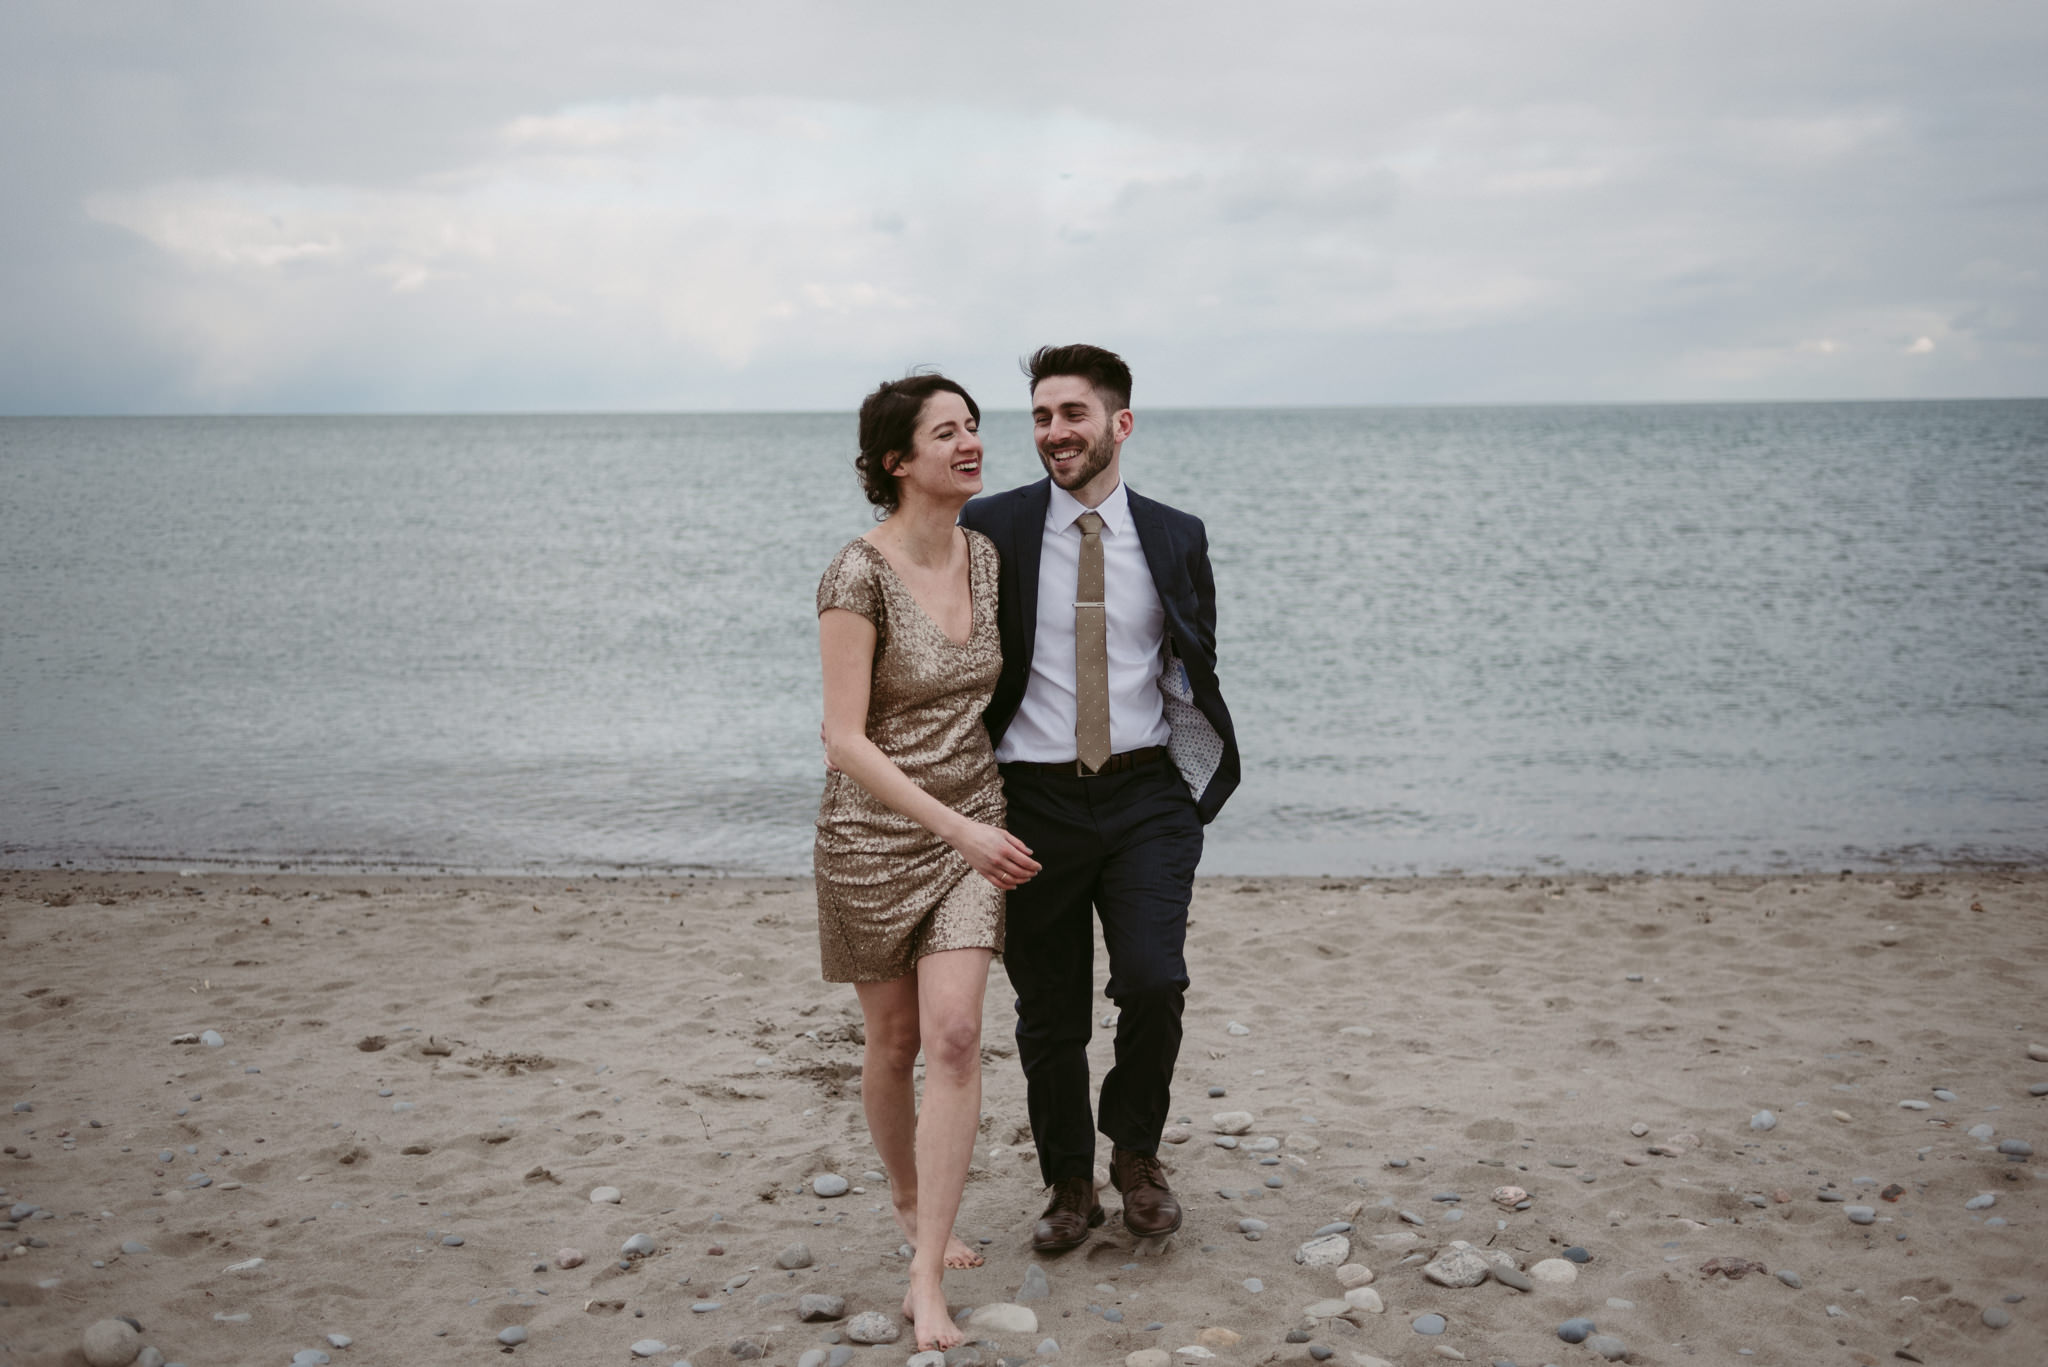 Couple walking and laughing on the beach